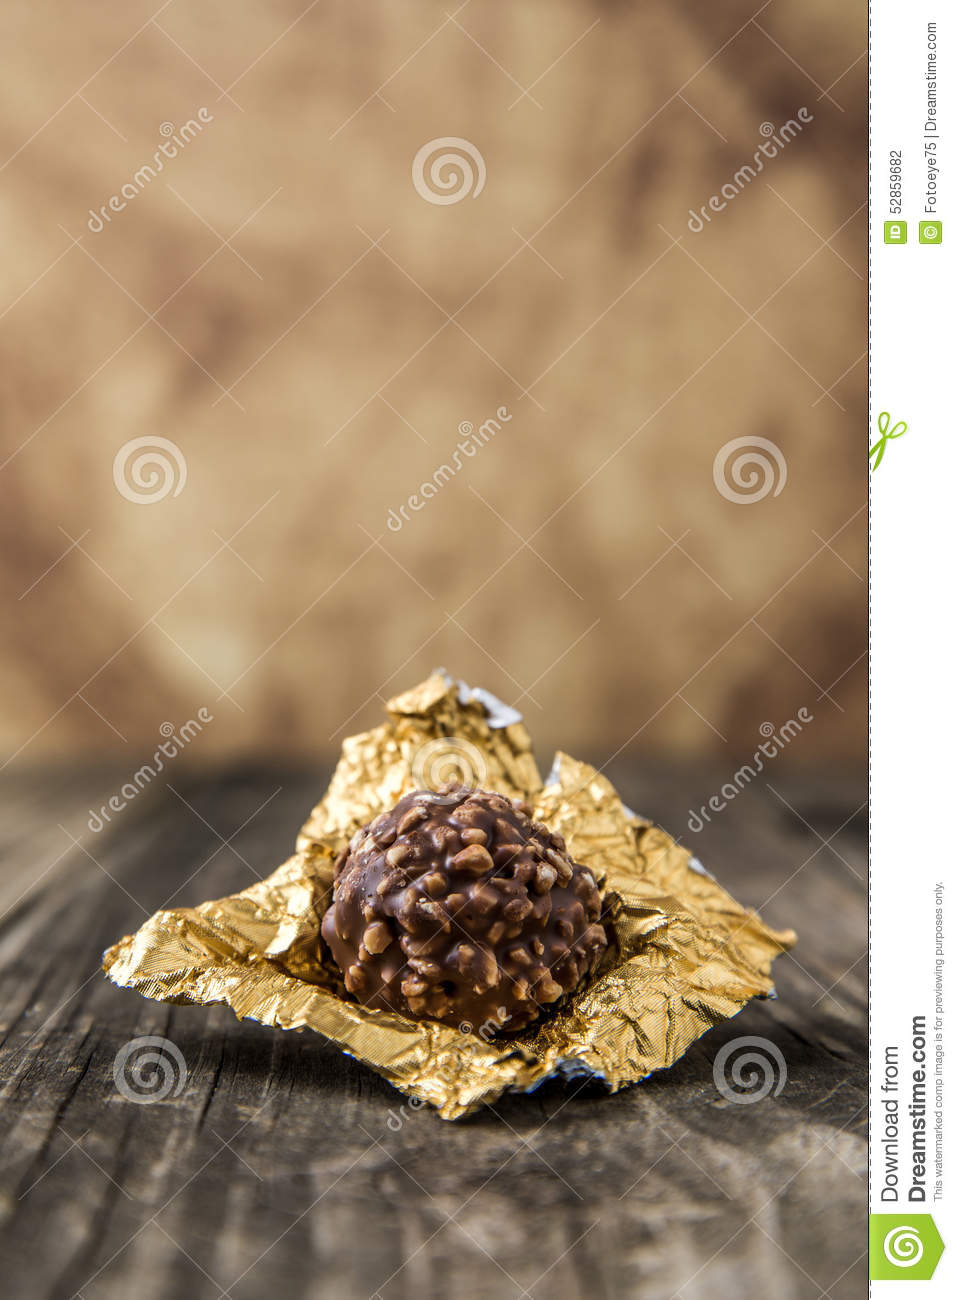 Ferrero Rocher Stock Symbol Image Collections Definition Of Symbolism T24 Coklat 24pcs Chocolate Hazelnut Candy In Gold Foil Photo